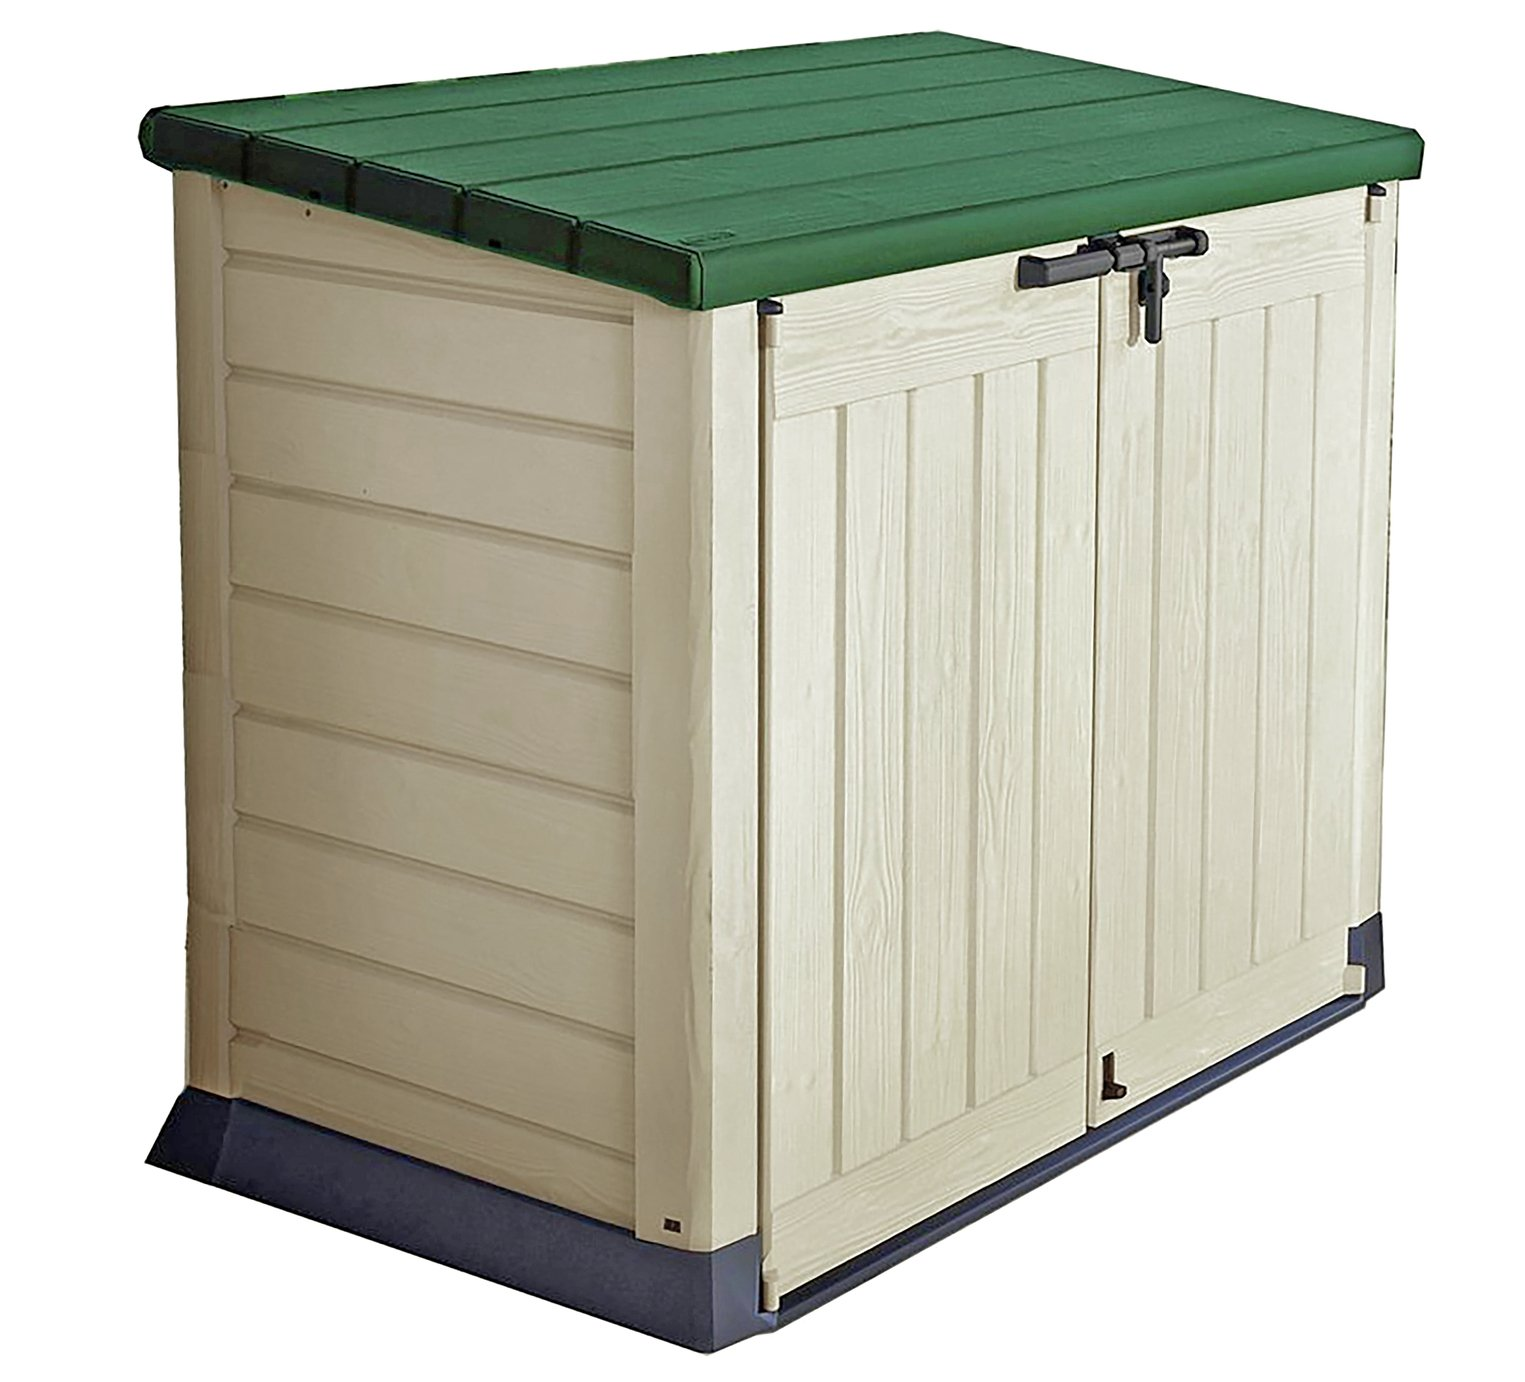 Keter Store It Out Max Garden Storage Box   Store Collection